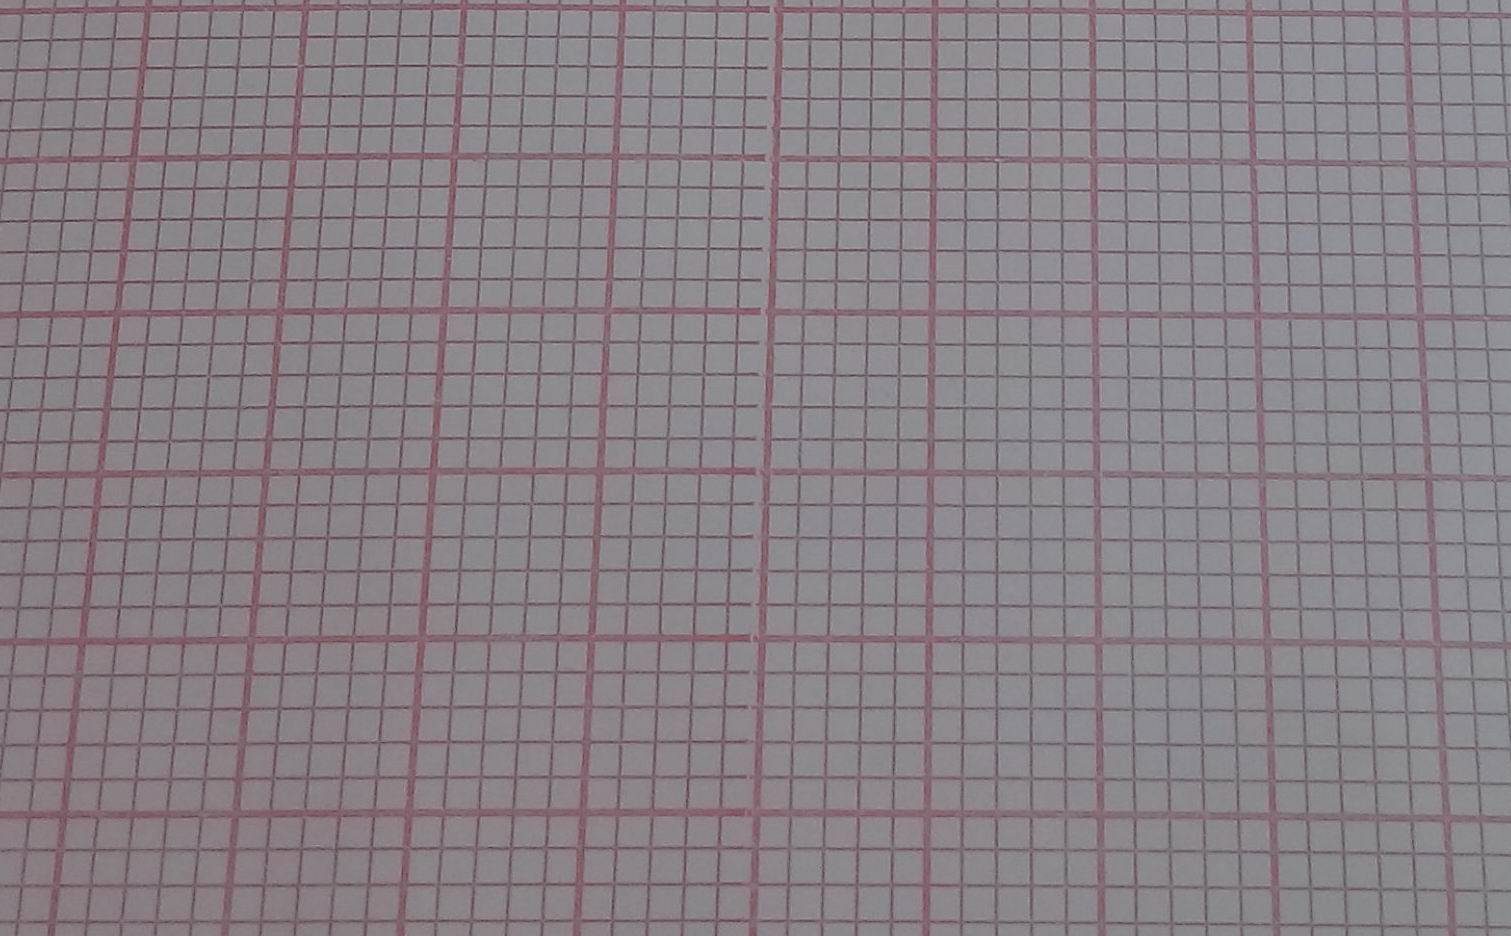 Twelve-Conduct Electrocardiograph Paper-183mmX30m